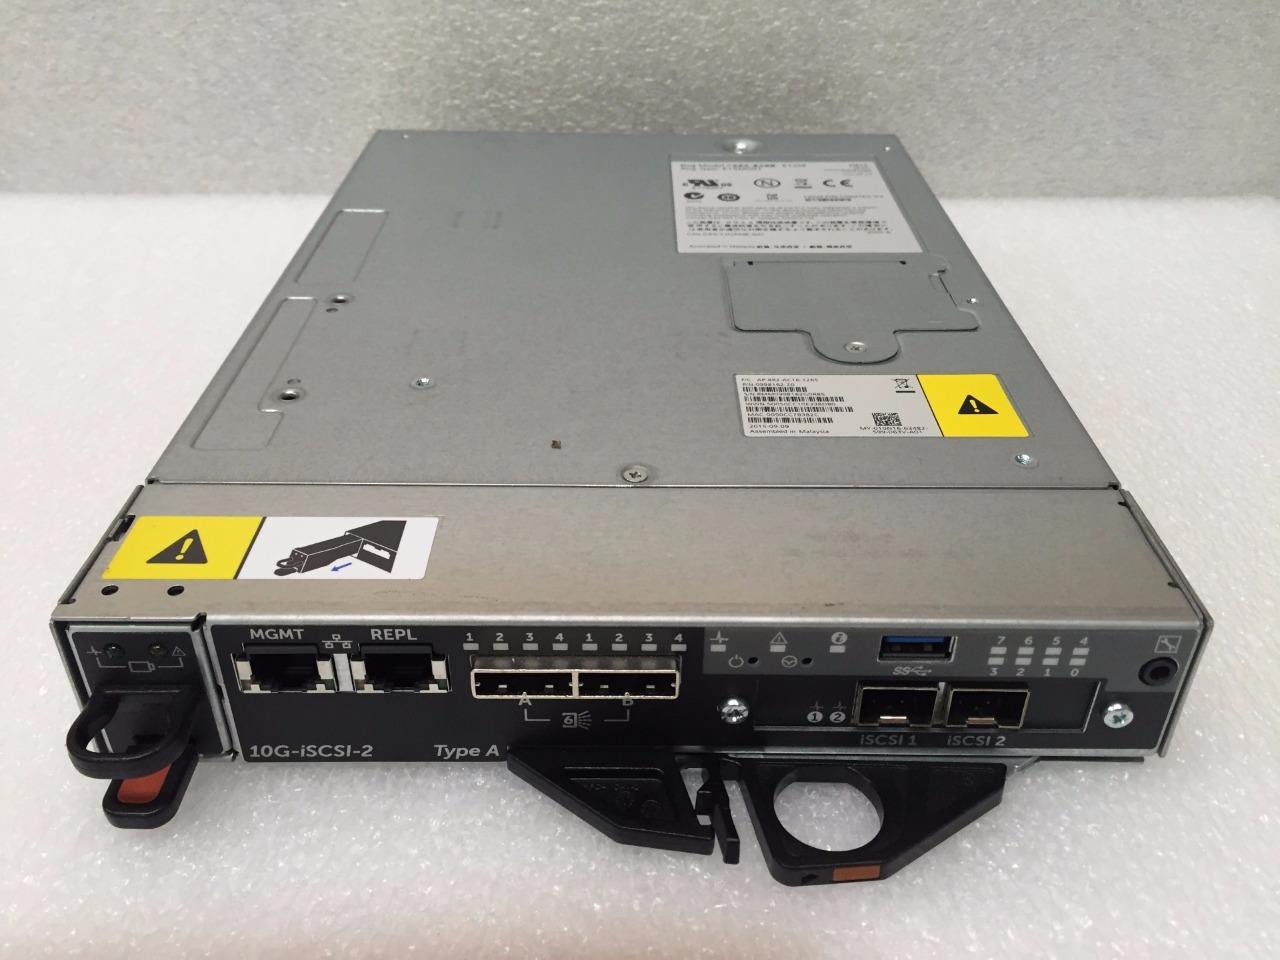 Dell Compellent SC4020 10G-iSCSI-2 Type A Controller E15M001 Dell ...